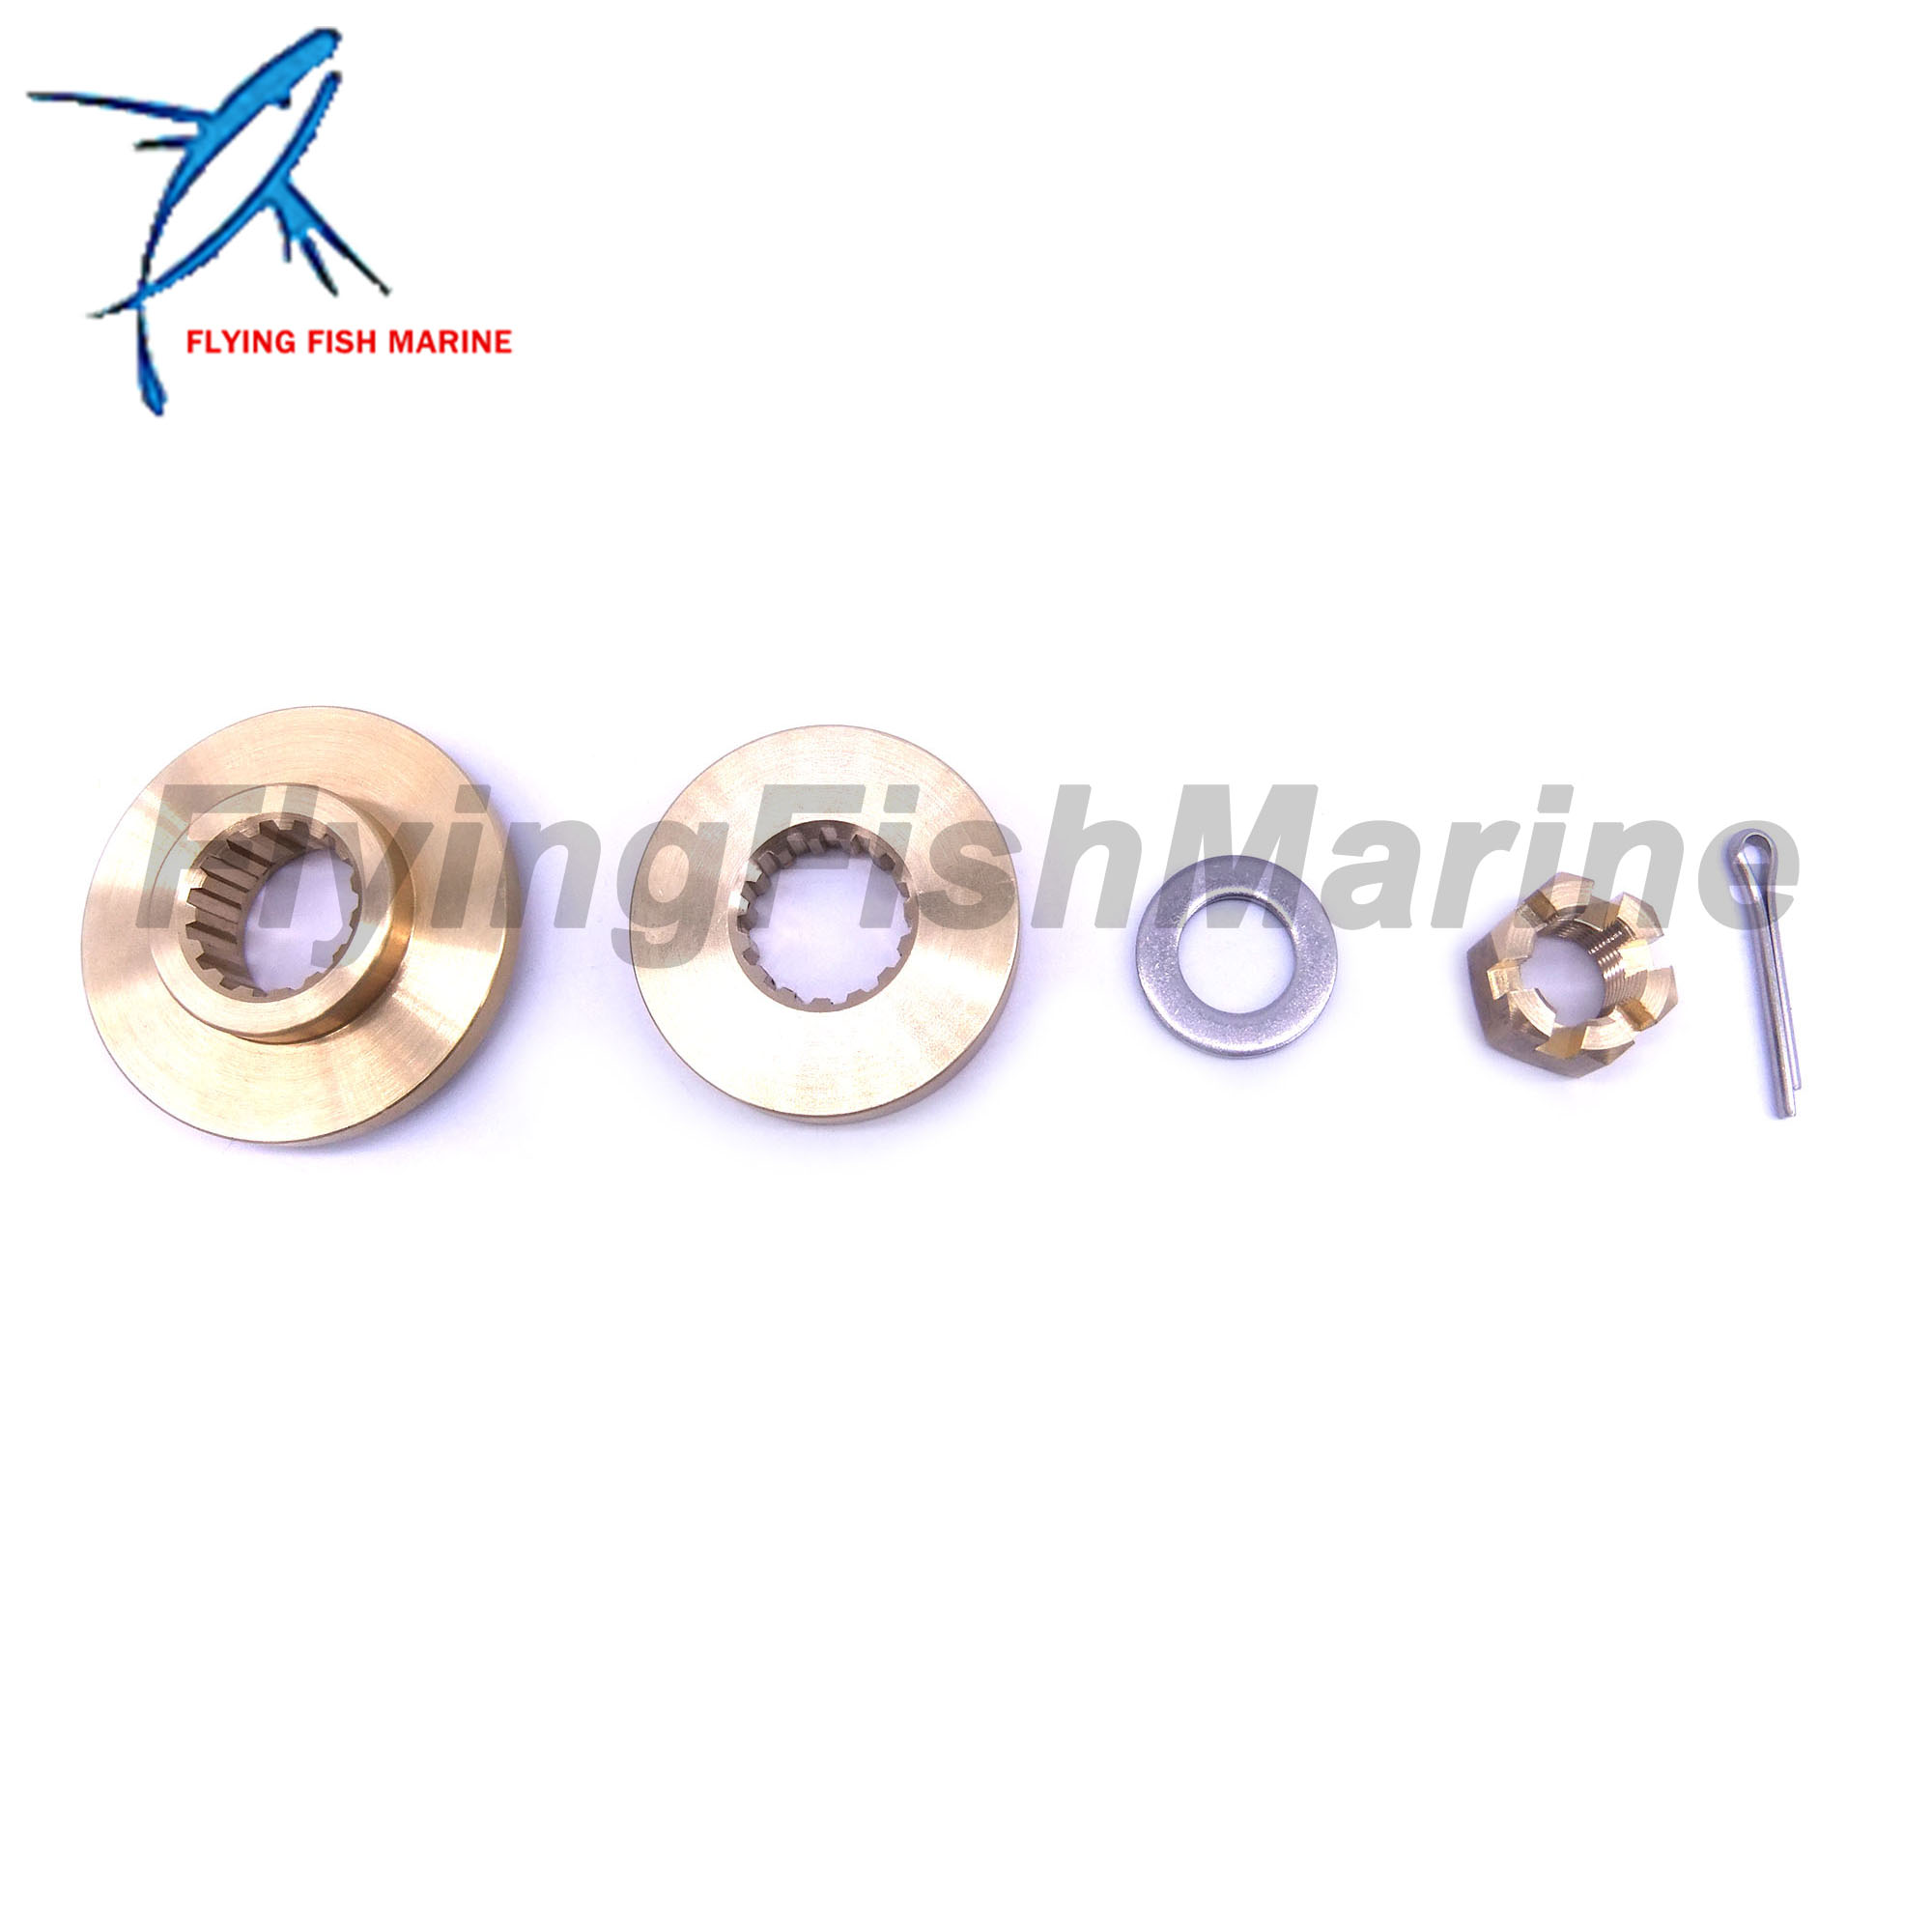 688-45997-01 63P-45987-00 688-45997-01 90171-18M04 Propeller Spacer Hardware Kits For Yamaha Outboard Engine 100